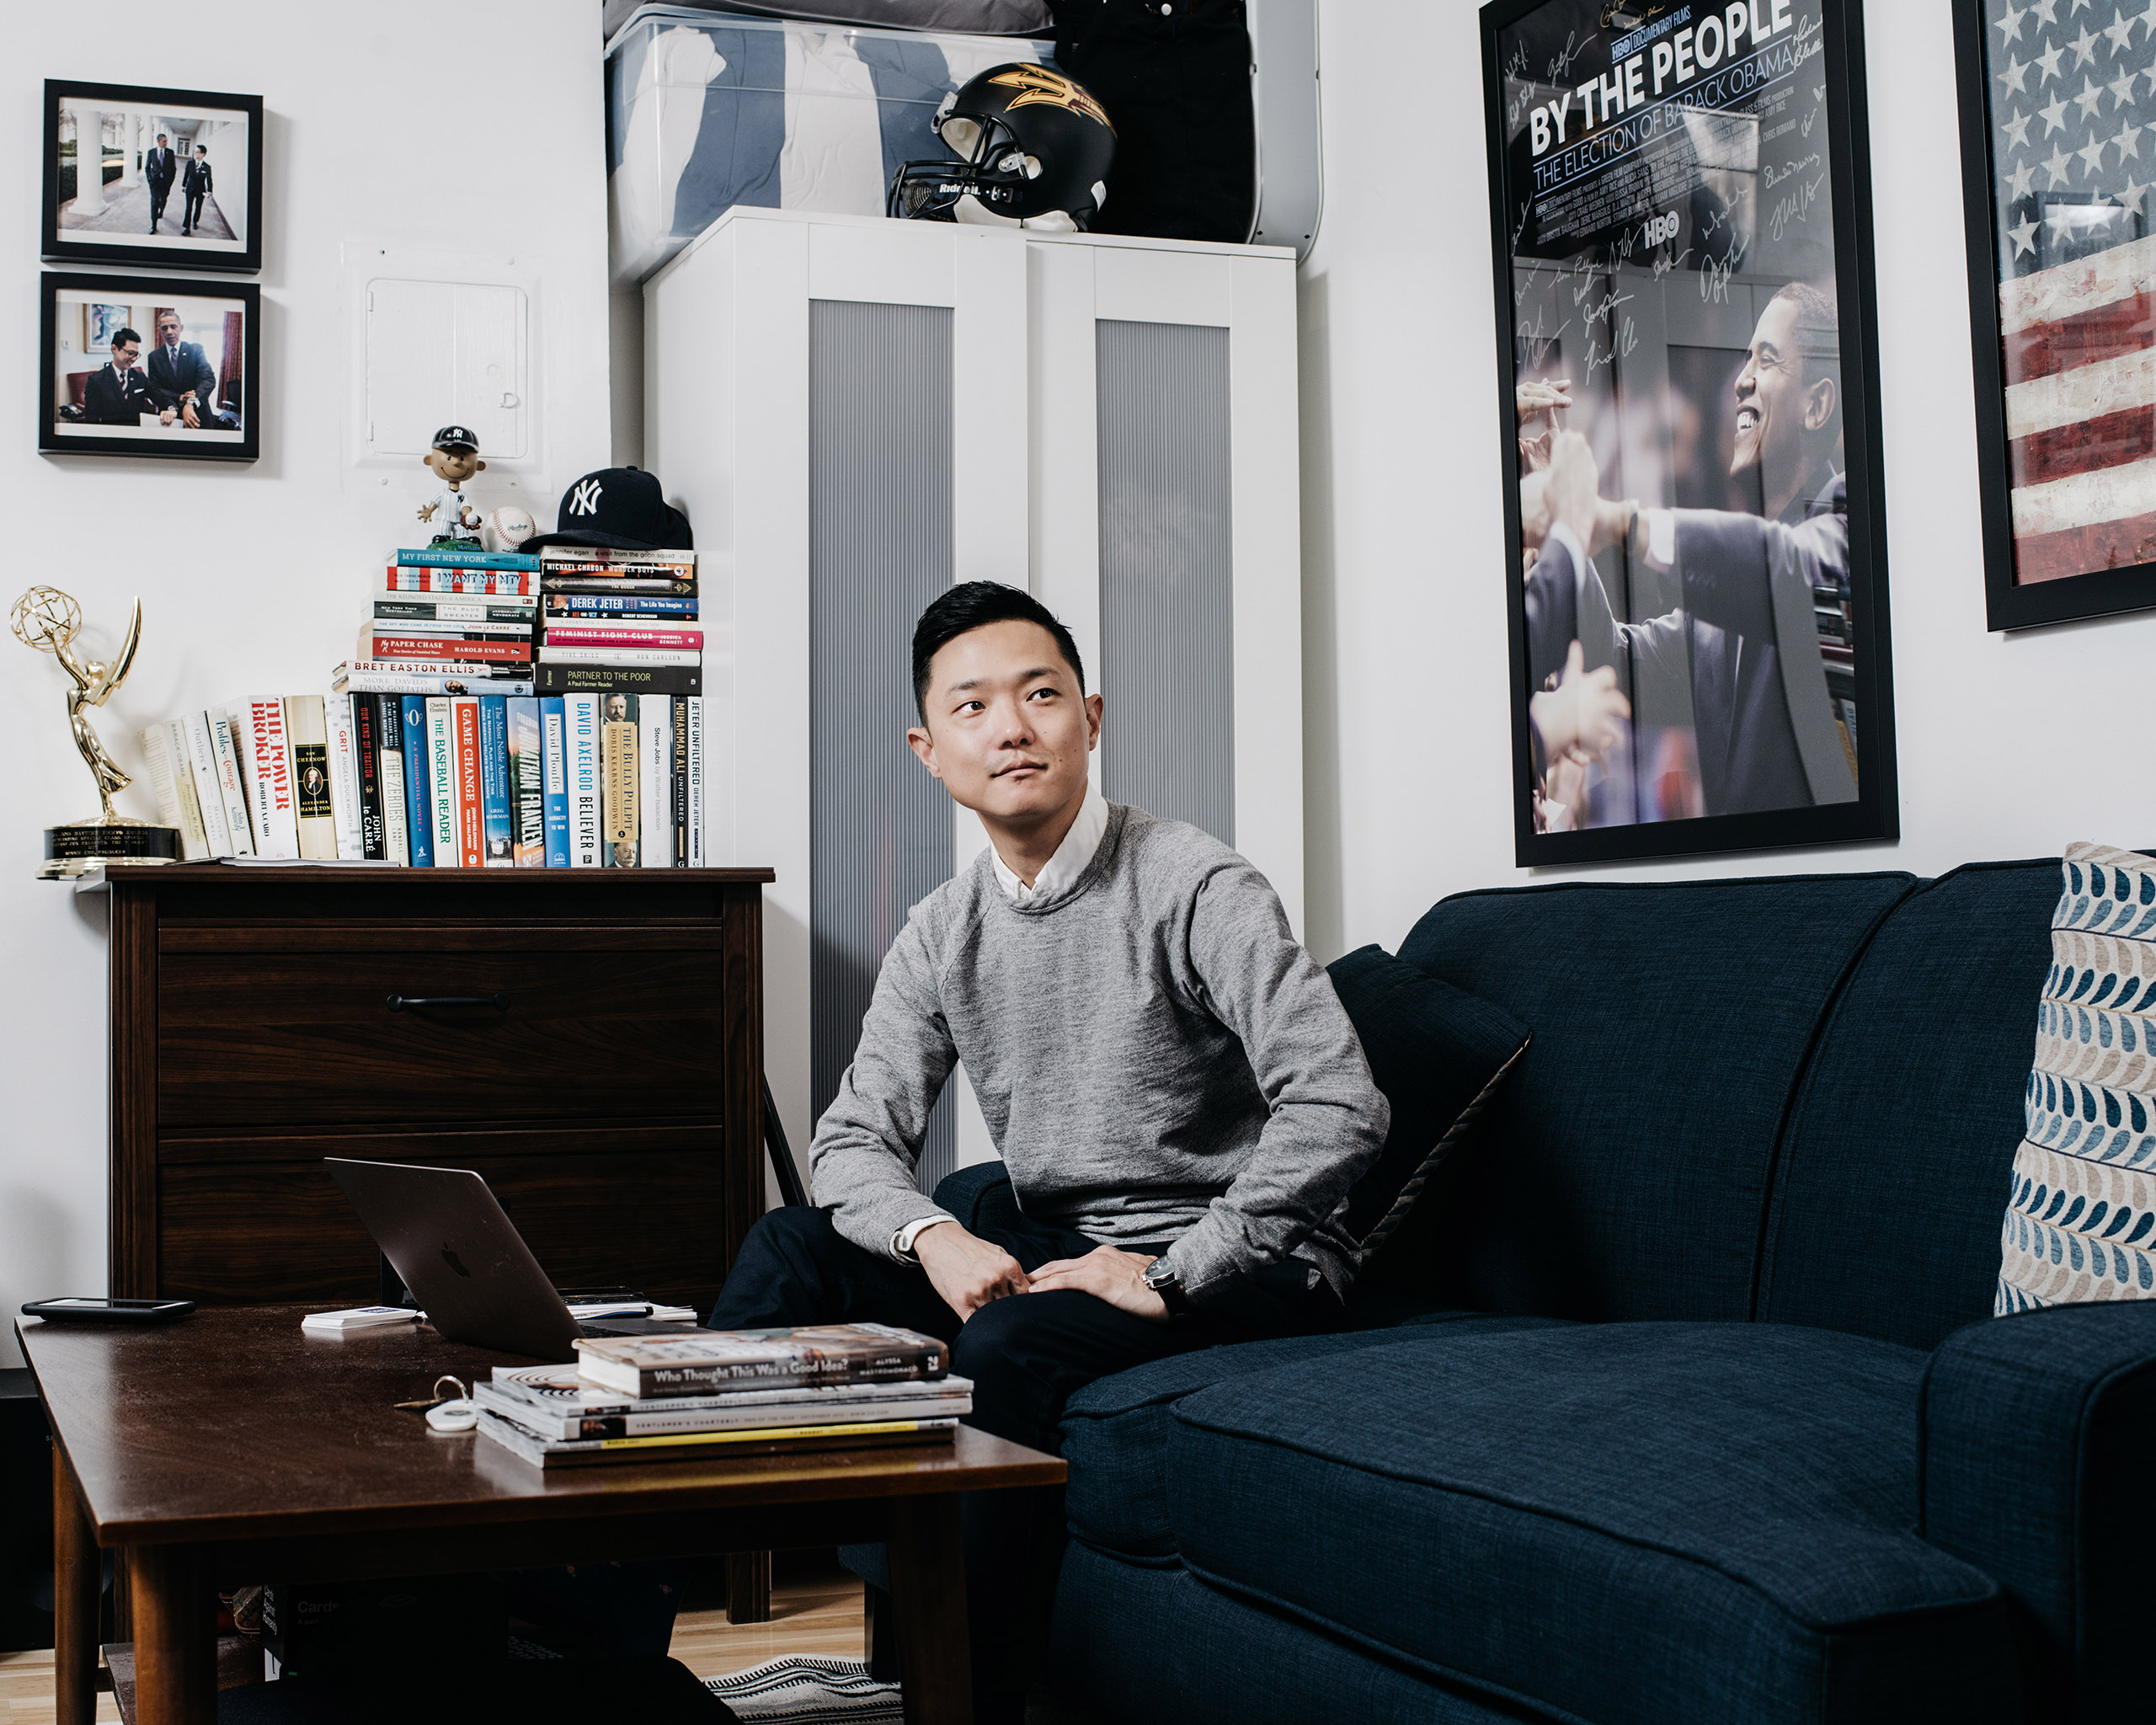 Ronnie Cho, 34. Candidate for New York City Council District 2 •Worked as an Iowa field organizer for Barack Obama's 2008 campaign and later as a White House aide •Former vice president at MTV in New York City •Decided to run after Obama encouraged supporters to do so during his farewell speech in January.